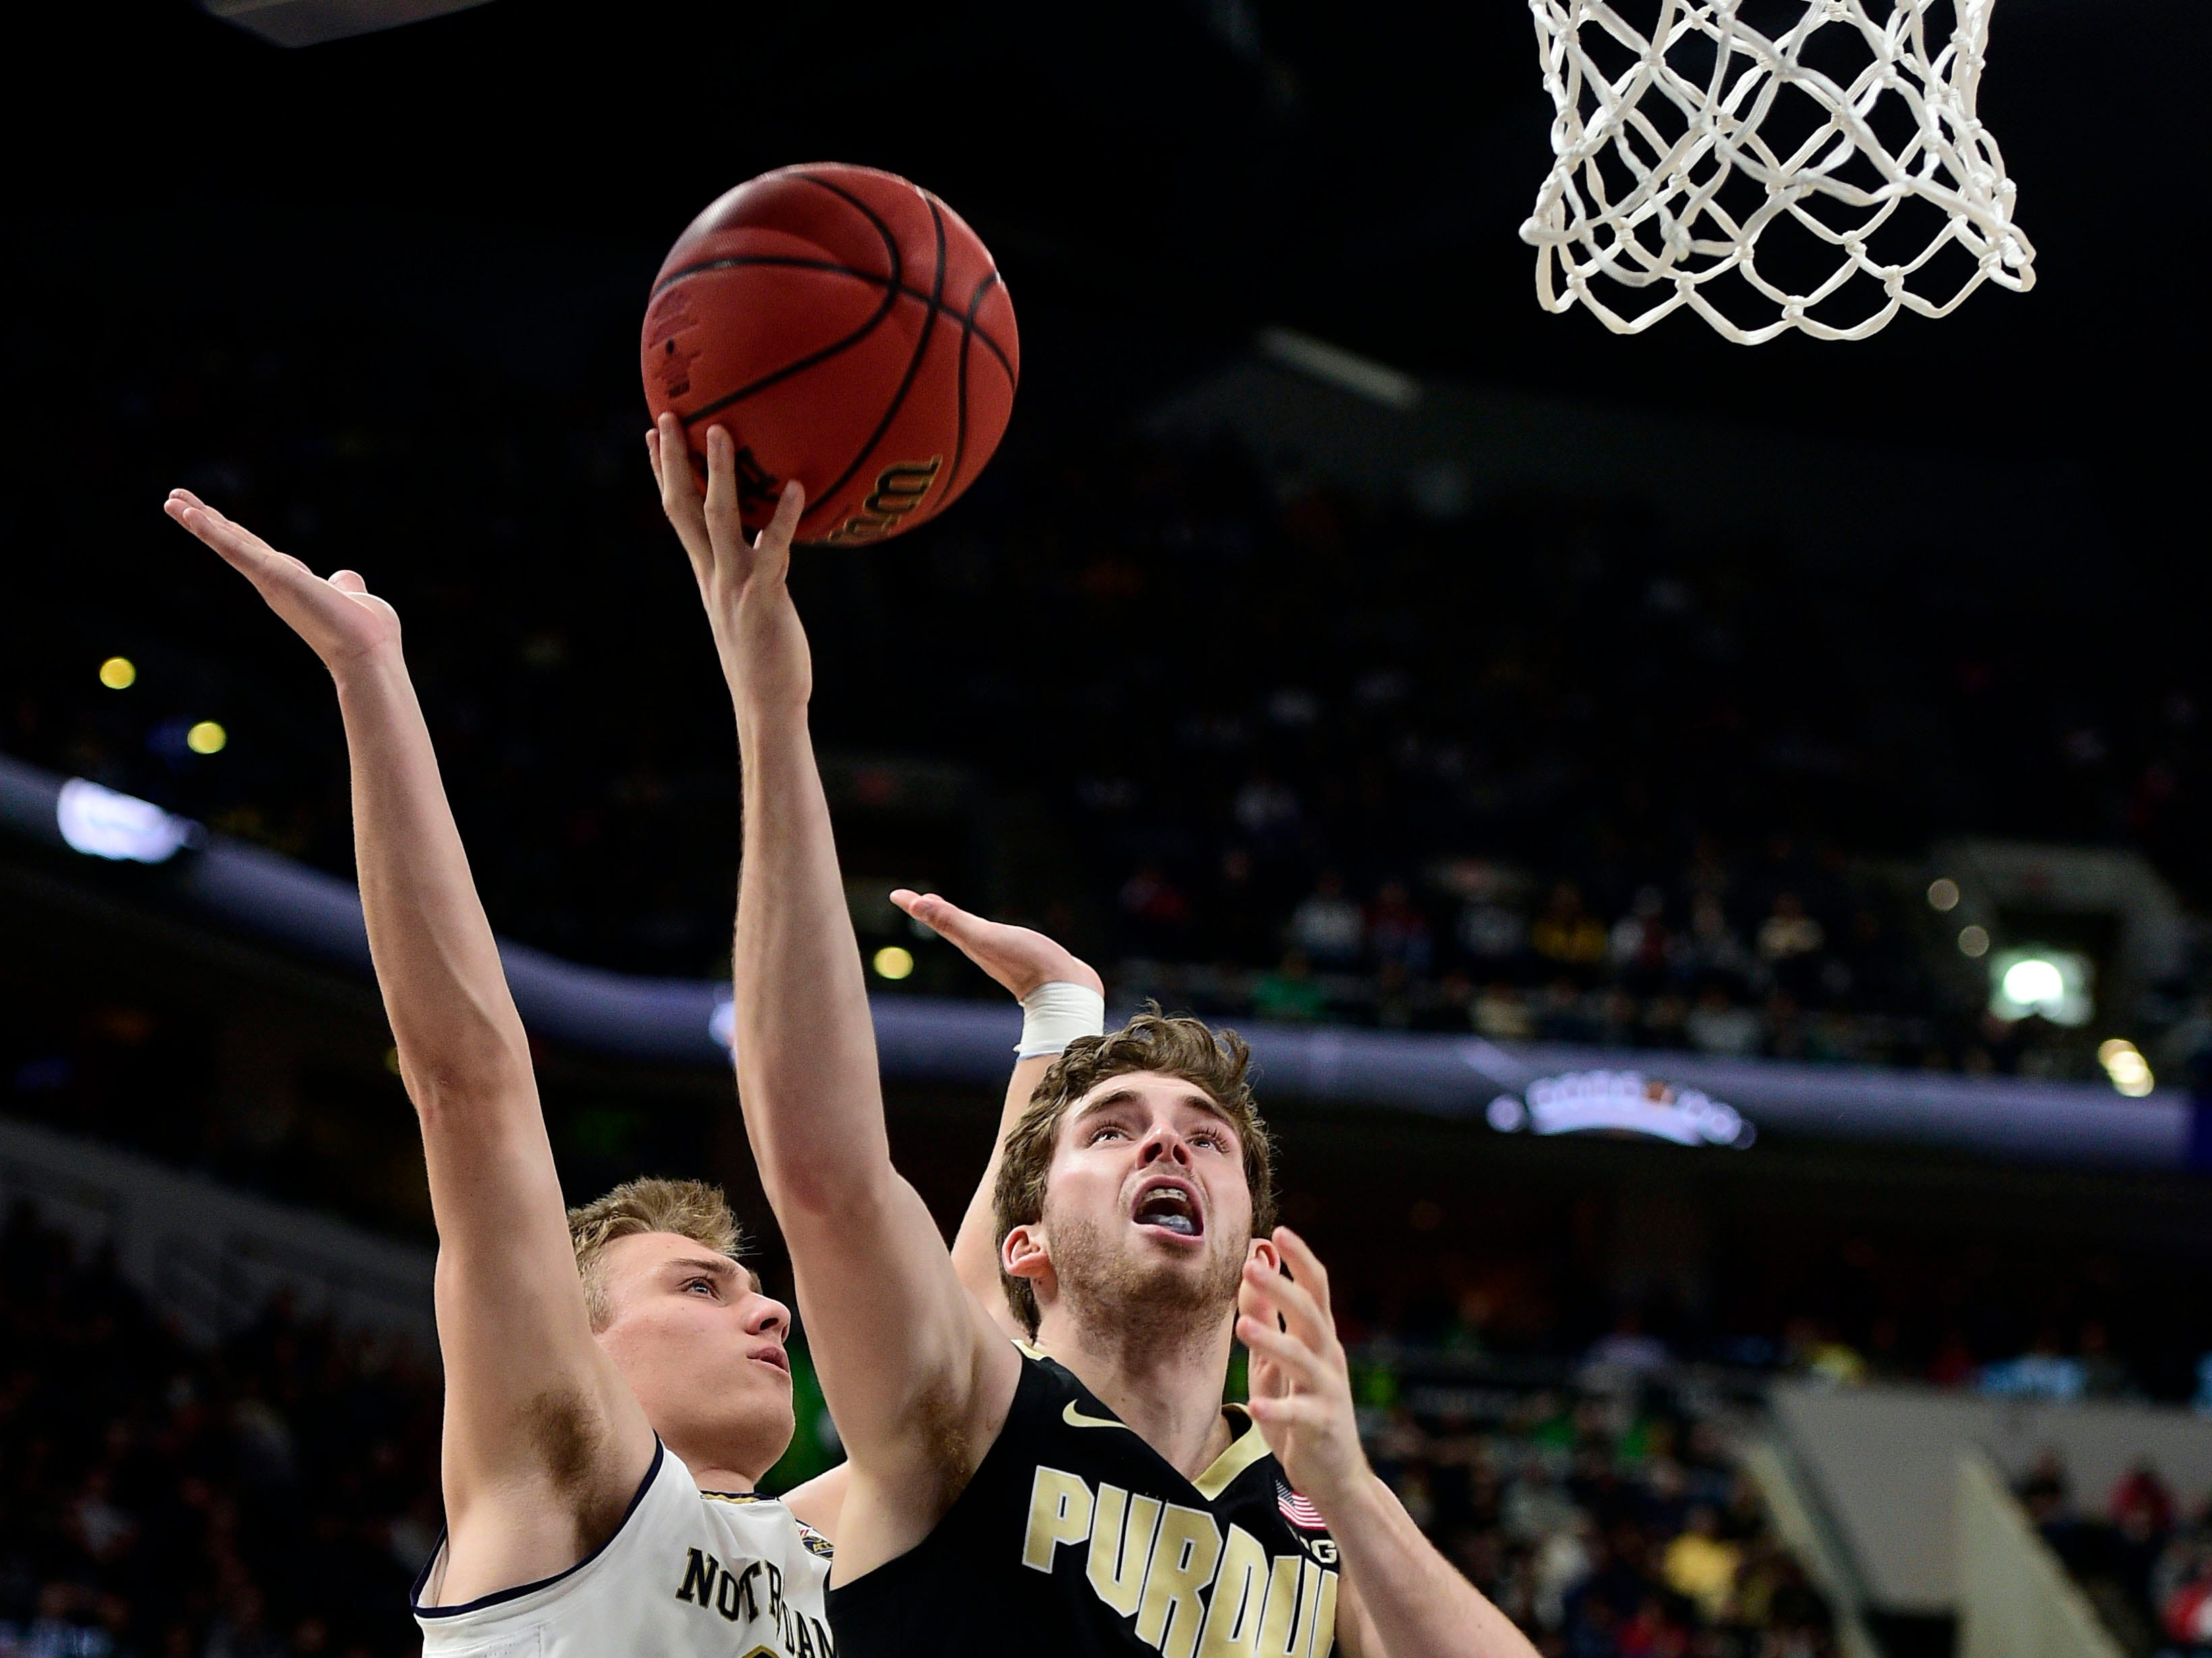 Dec 15, 2018; Indianapolis, IN, USA; Purdue Boilermaker forward Ryan Cline (14) shoot against Notre Dame Fighting Irish forward Dane Goodwin (23) at Bankers Life Fieldhouse. Mandatory Credit: Thomas J. Russo-USA TODAY Sports